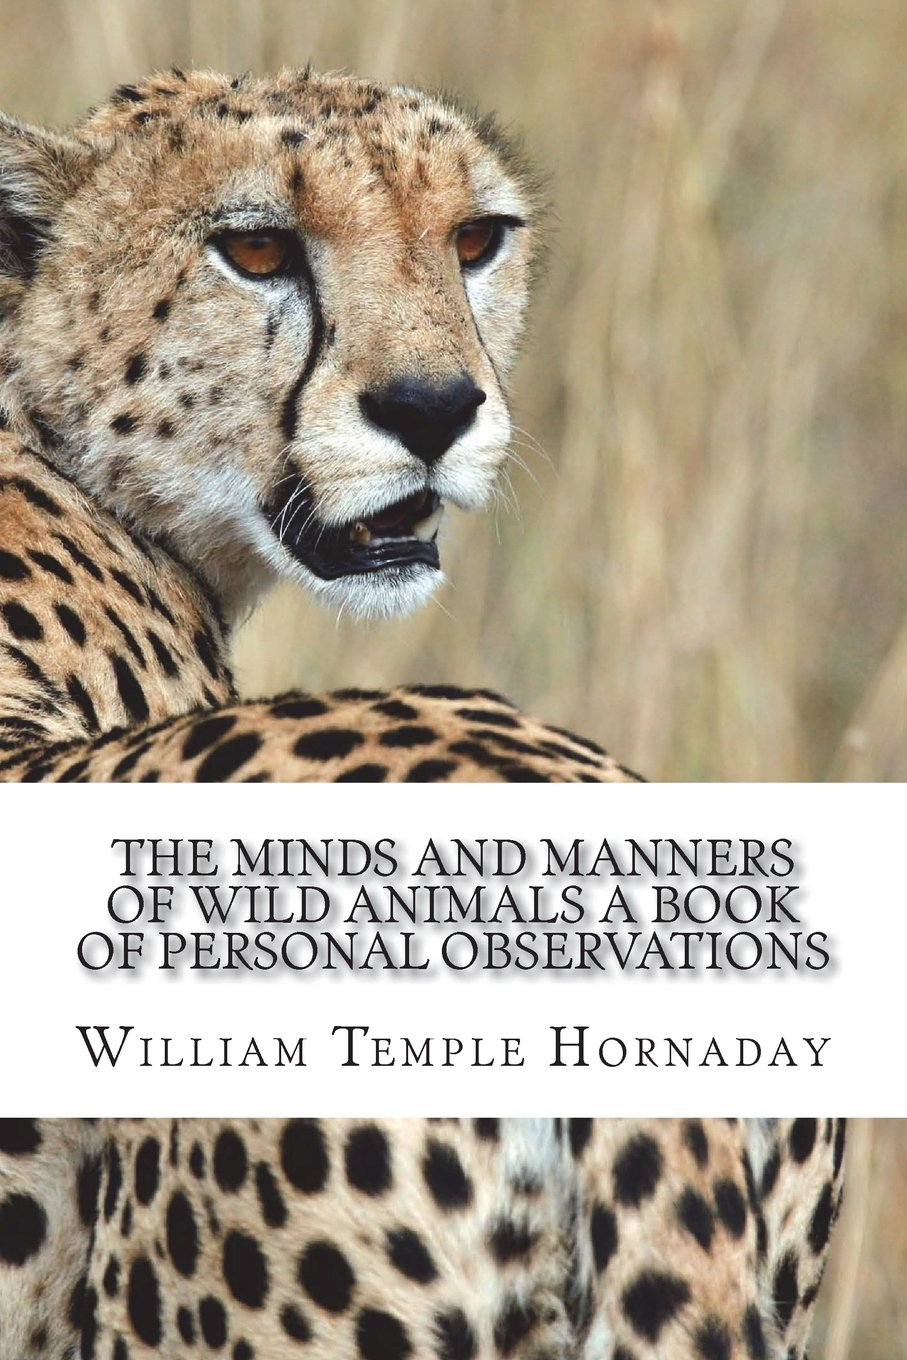 Download The Minds and Manners of Wild Animals A Book of Personal Observations PDF